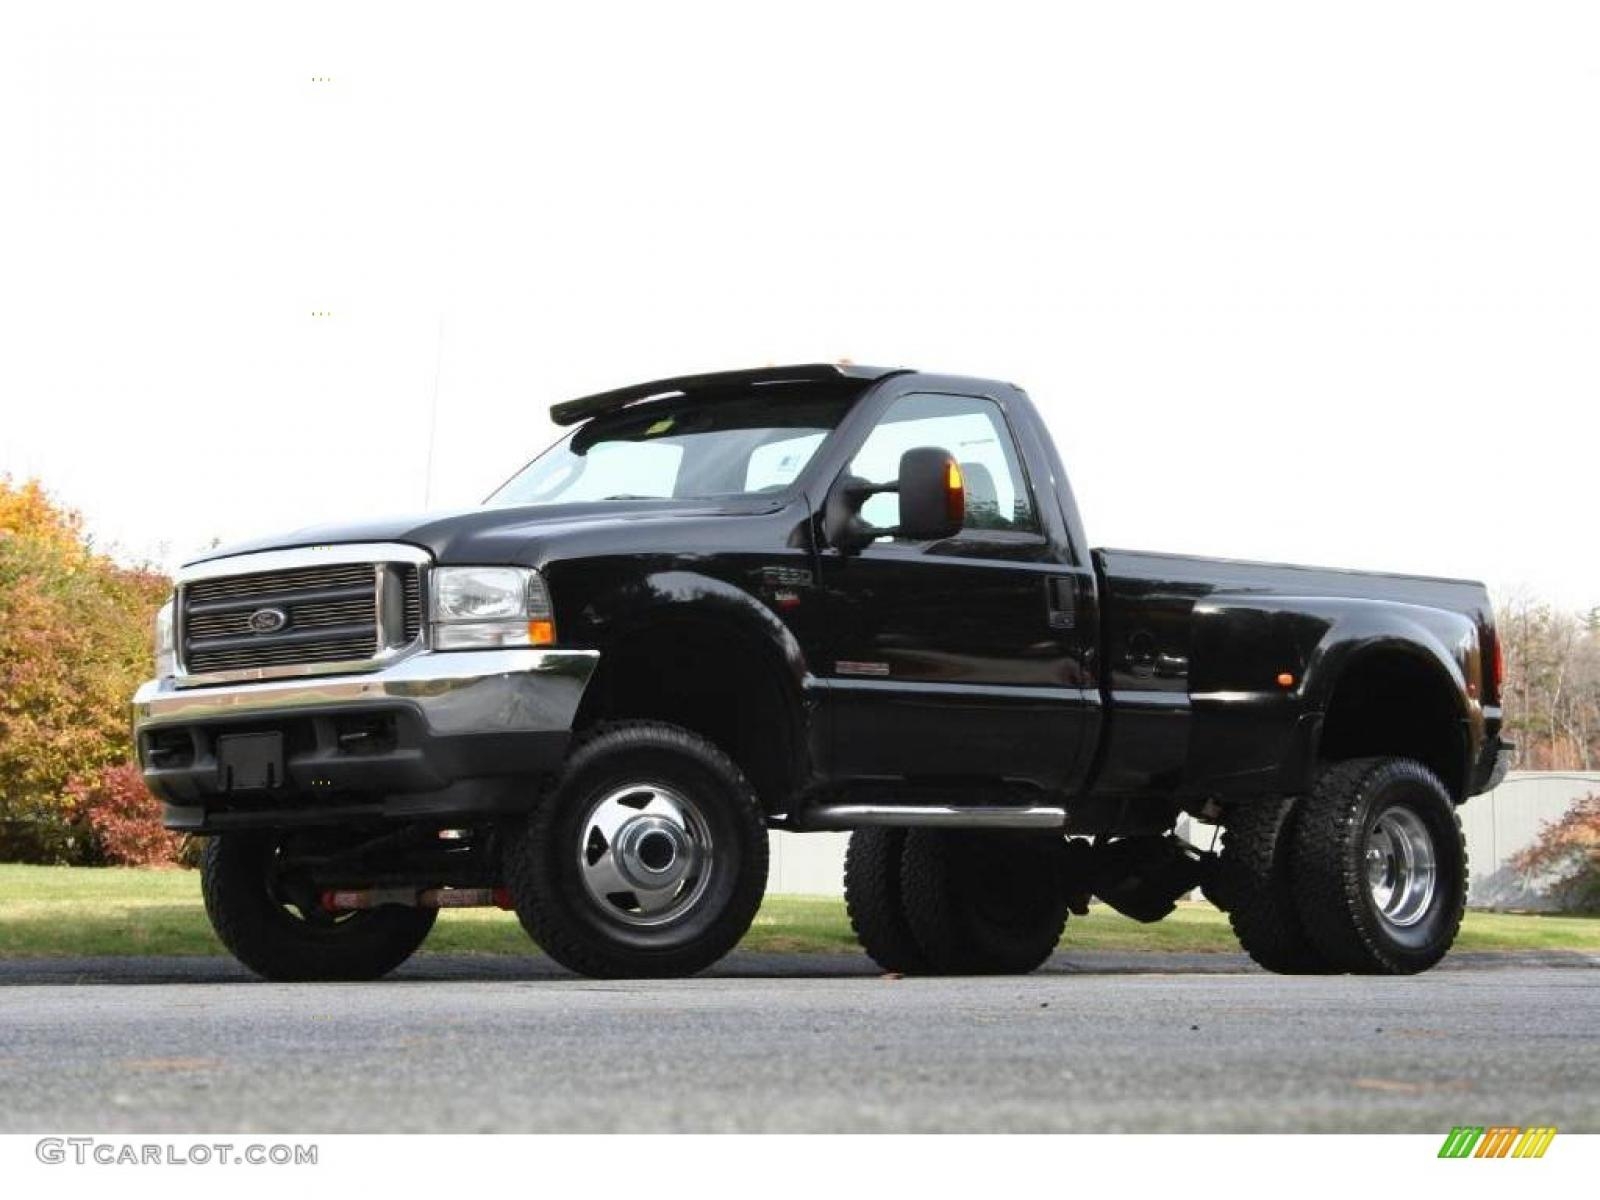 2004 ford f 350 super duty information and photos zombiedrive. Black Bedroom Furniture Sets. Home Design Ideas